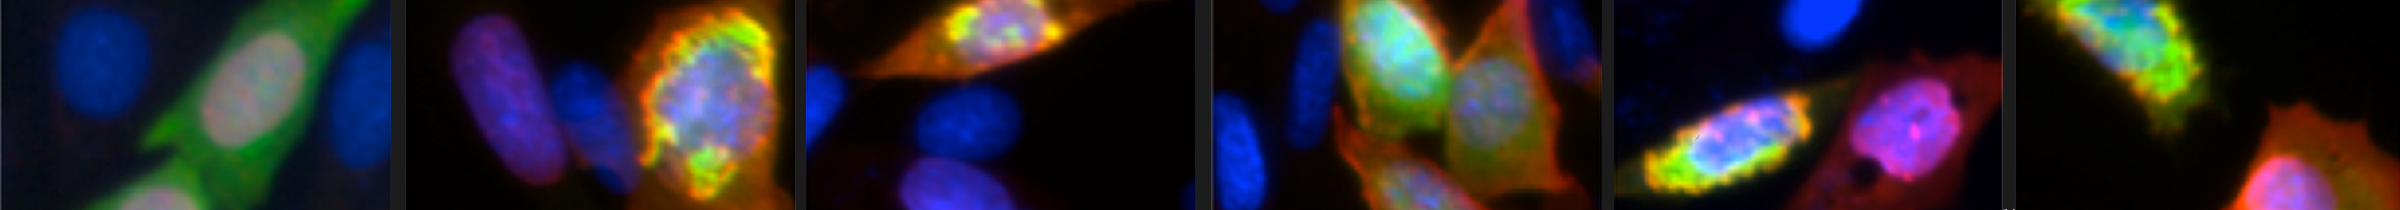 Figure 3. SUMOs colocalize with familial ALS-linked SOD1 mutants in intracellular aggregates.